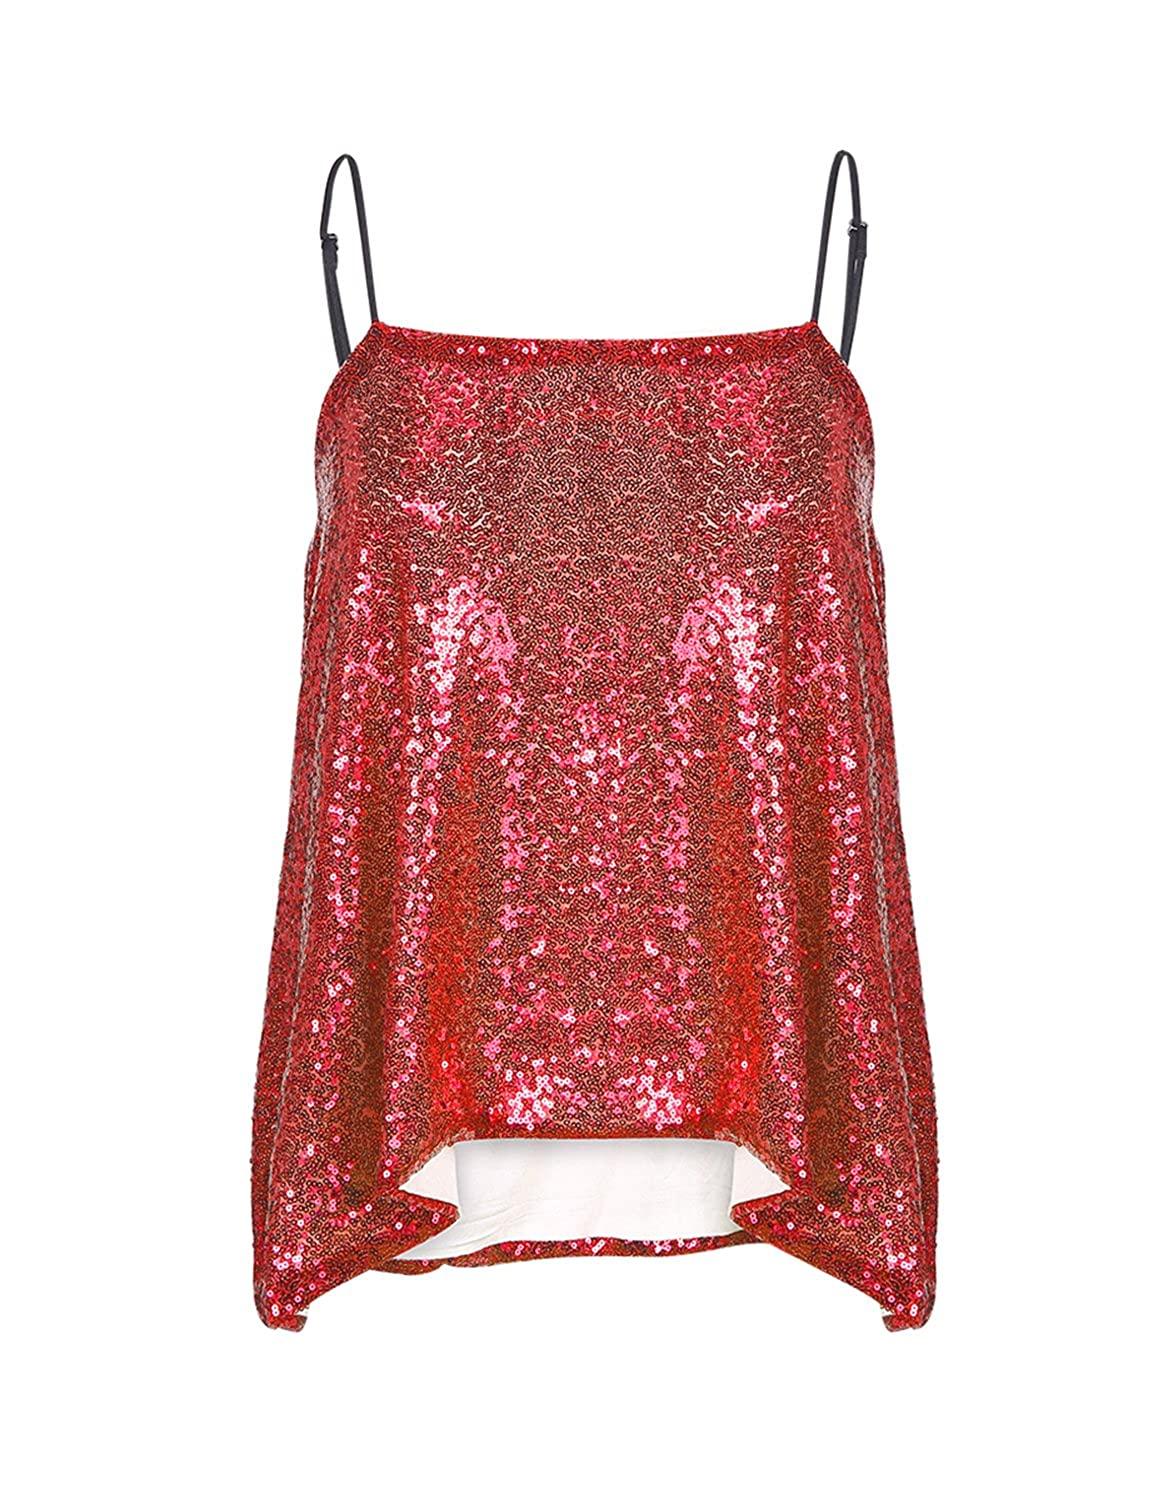 HaoDuoYi Womens Sparkly Sequin Spaghetti Strap Party Club Top Shirt